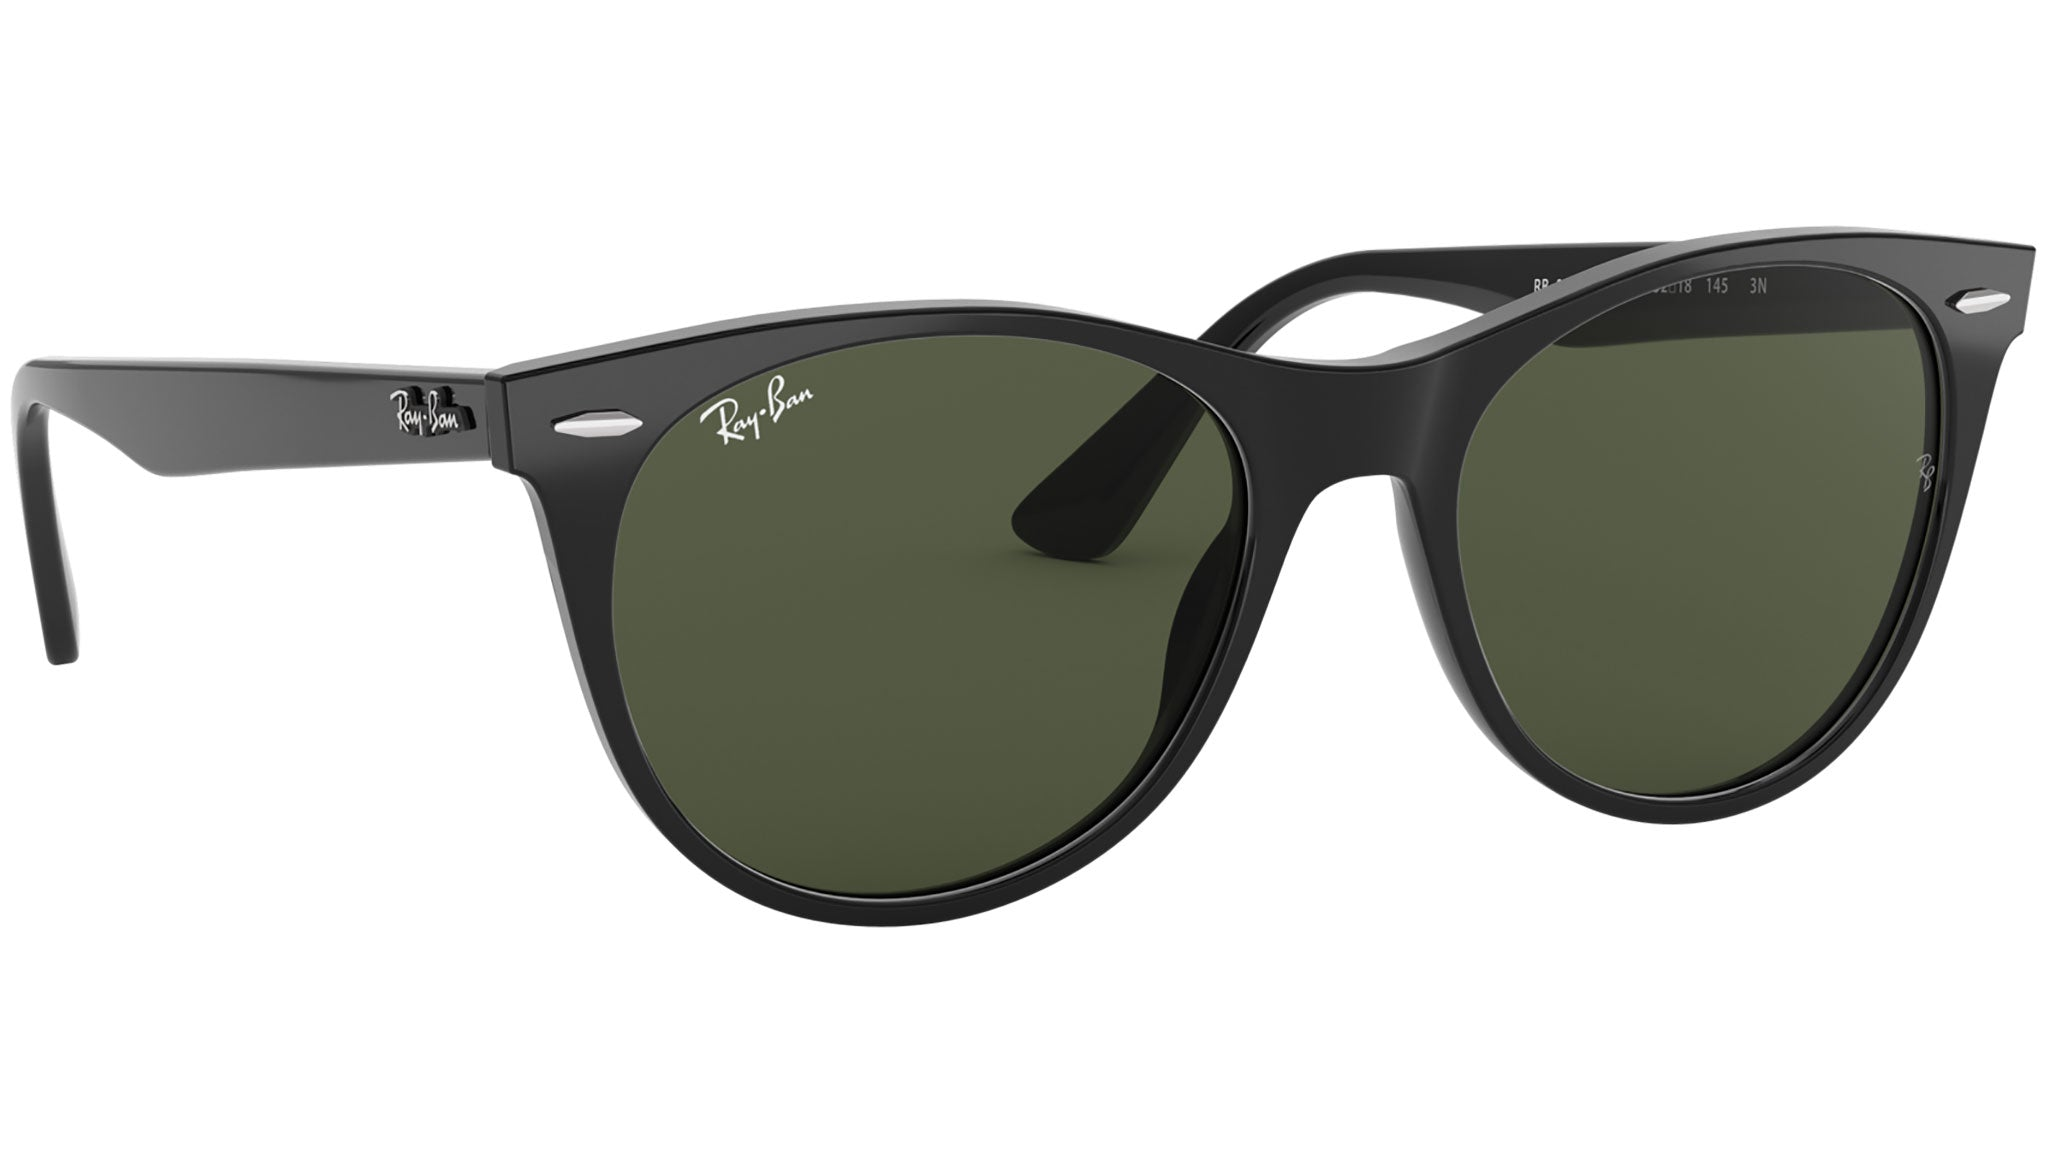 Wayfarer II Classic RB2185 black and green